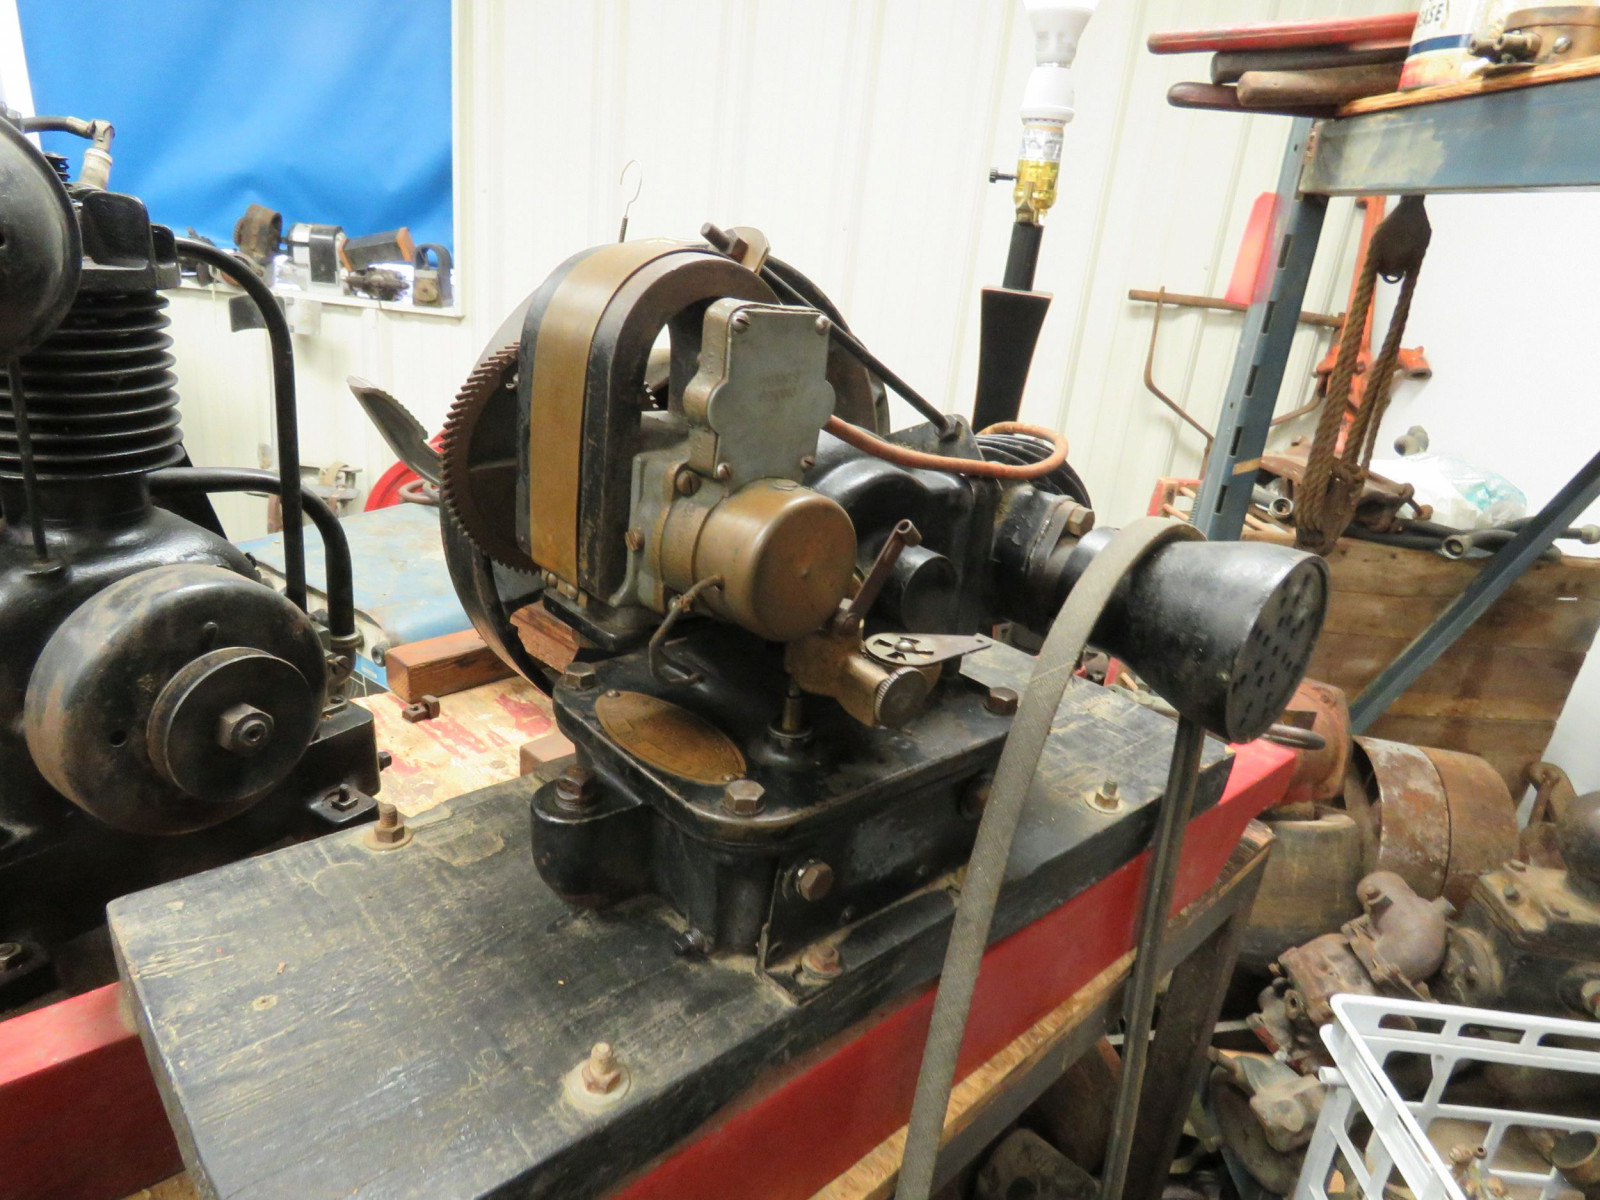 Associated 3/4hp Stationary Engine 4490 - Image 3